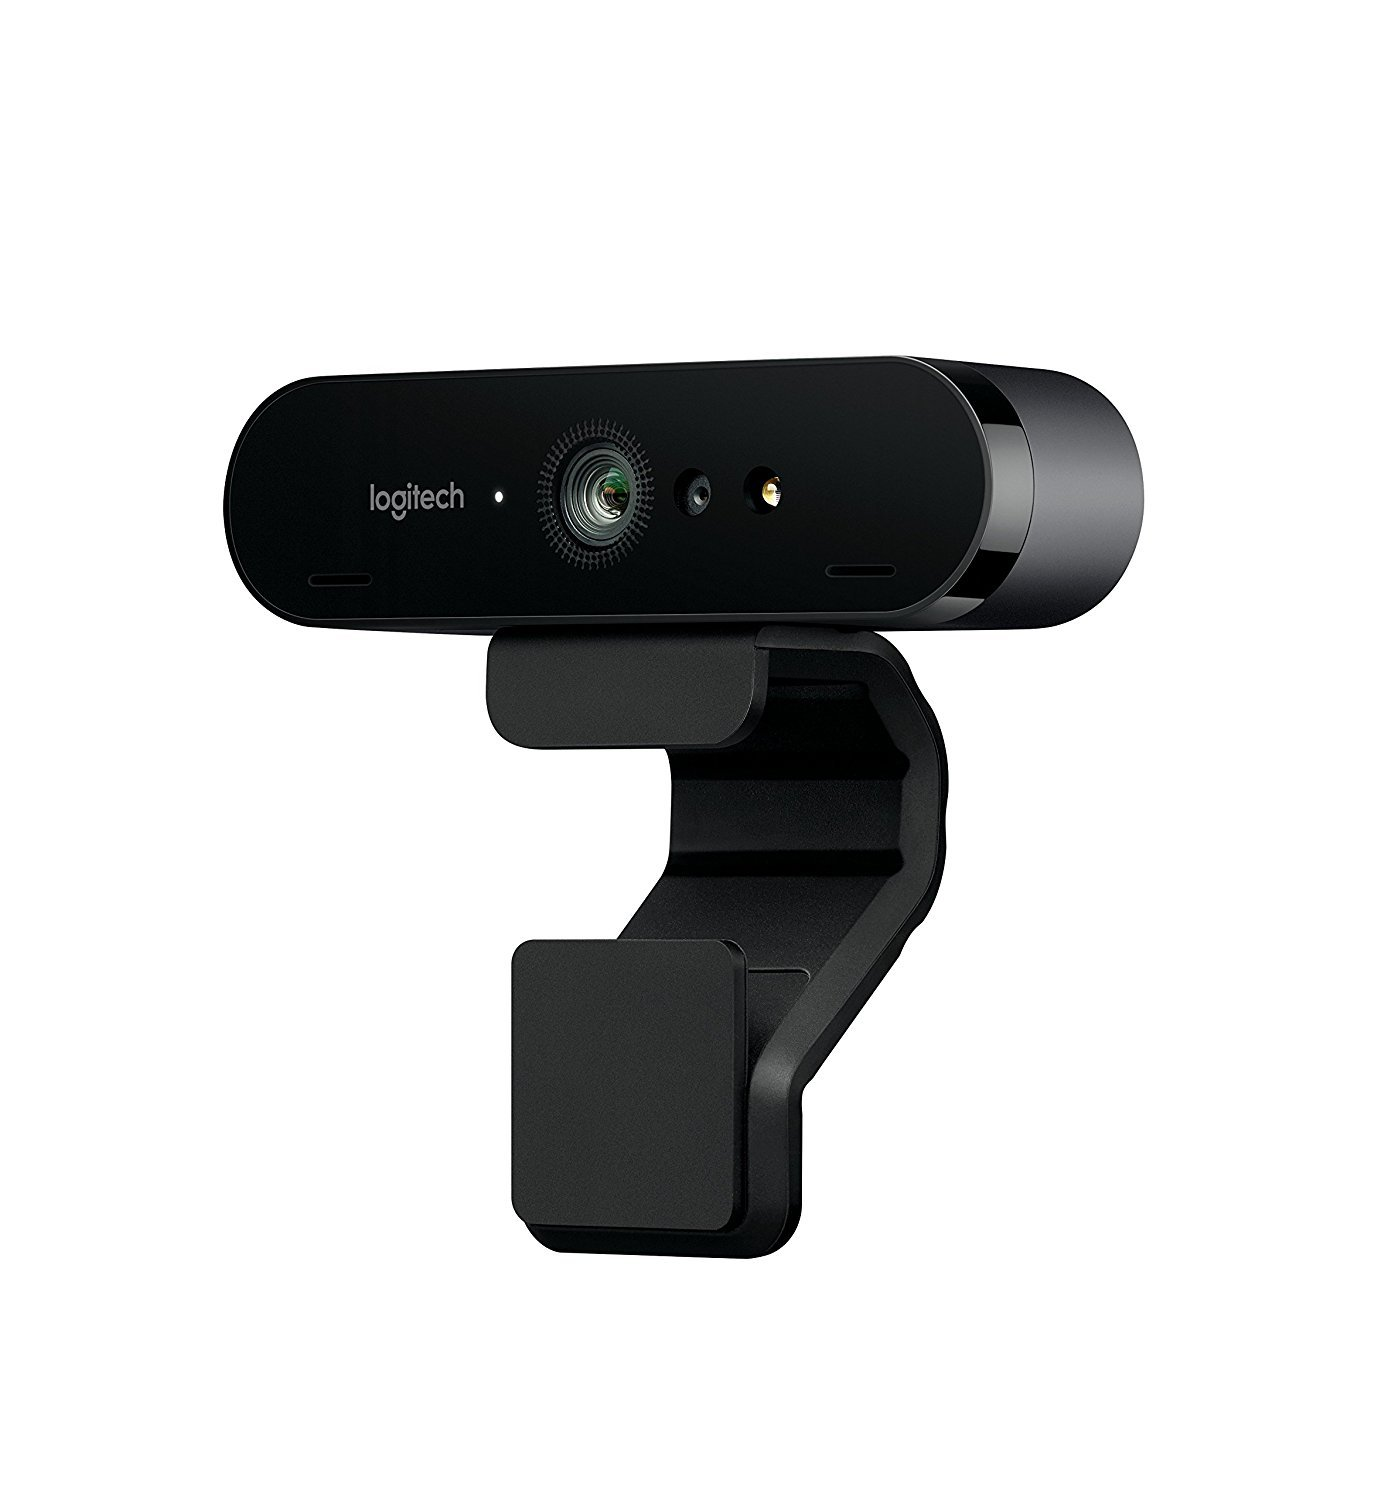 Logitech 4K Ultra HD Pro Webcam 5x Zoom 960-001178(Certified Refurbished) by Logitech (Image #2)